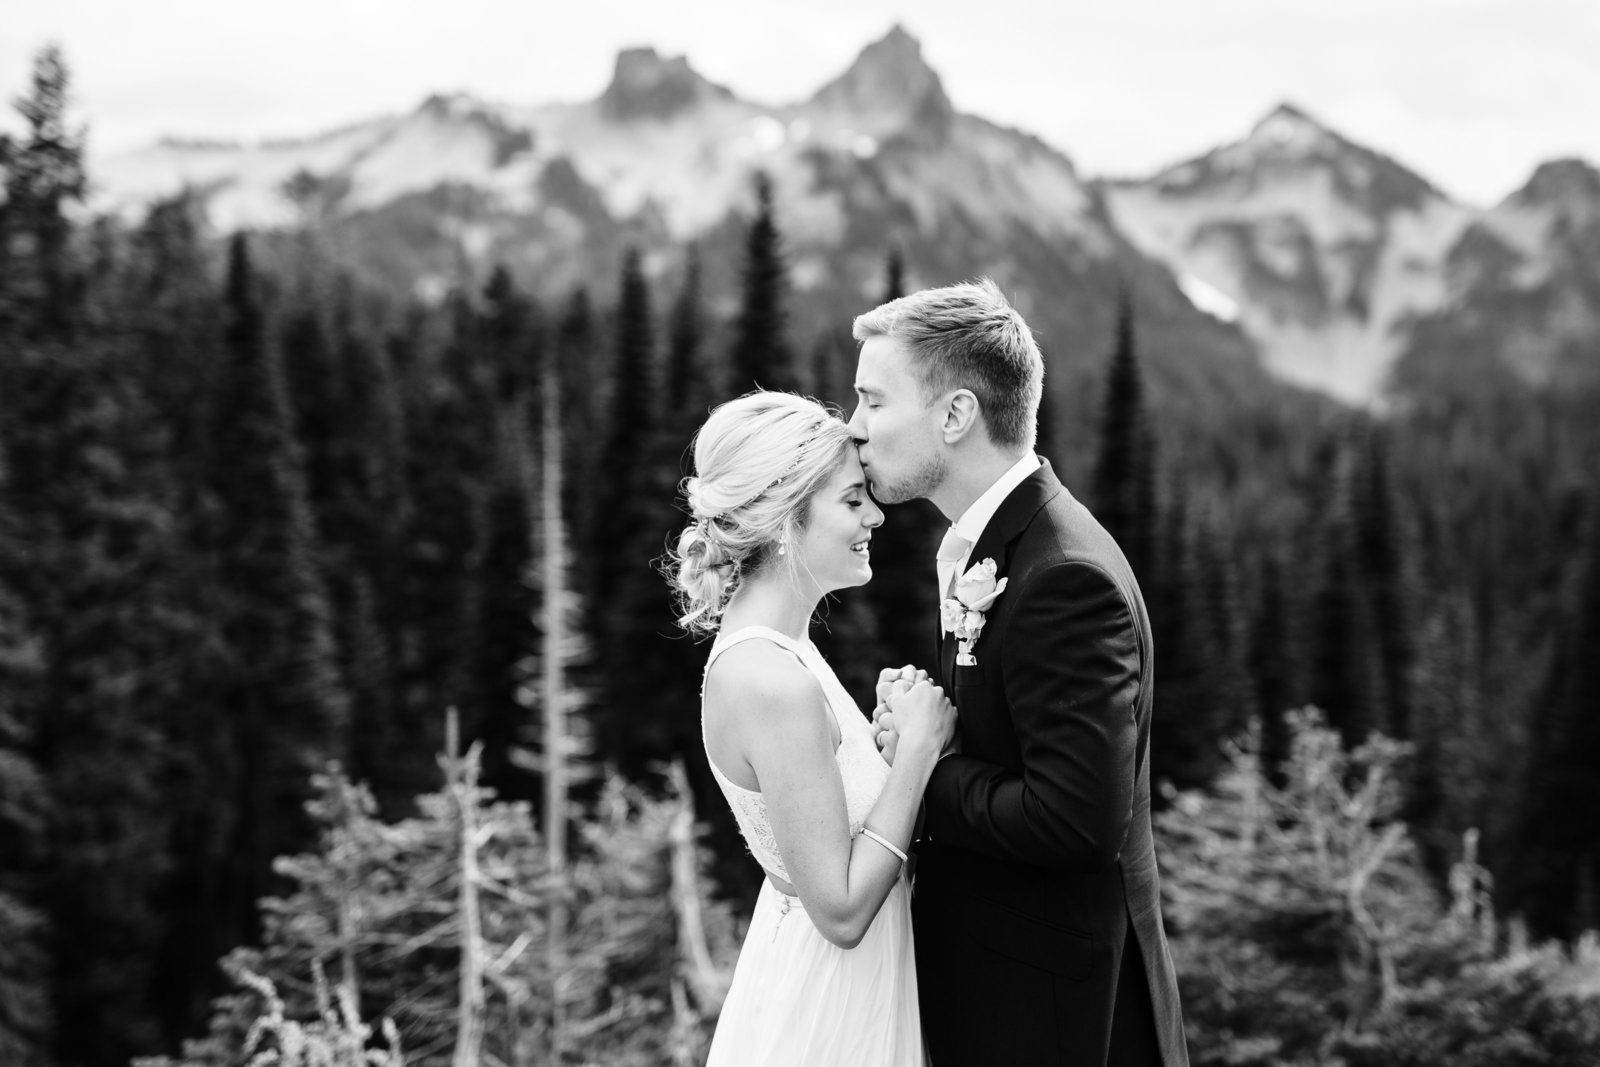 mount-rainier-national-park-elopement-cameron-zegers-photographer-seattle-140